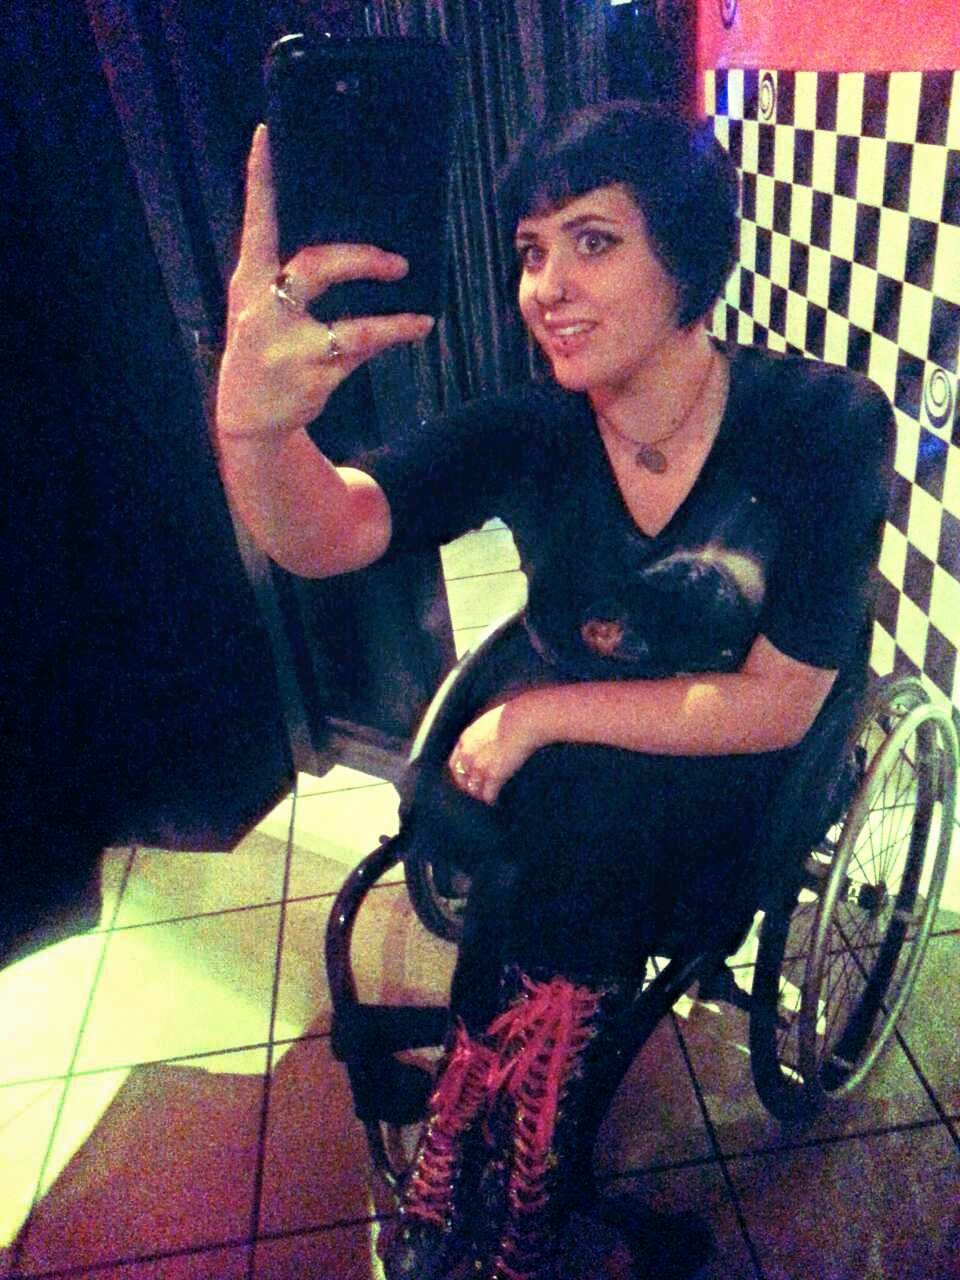 Woman with short black hair, wearing dark patterned clothes and tall boots with red laces, sitting in a a wheelchair, with hand up holding iPhone